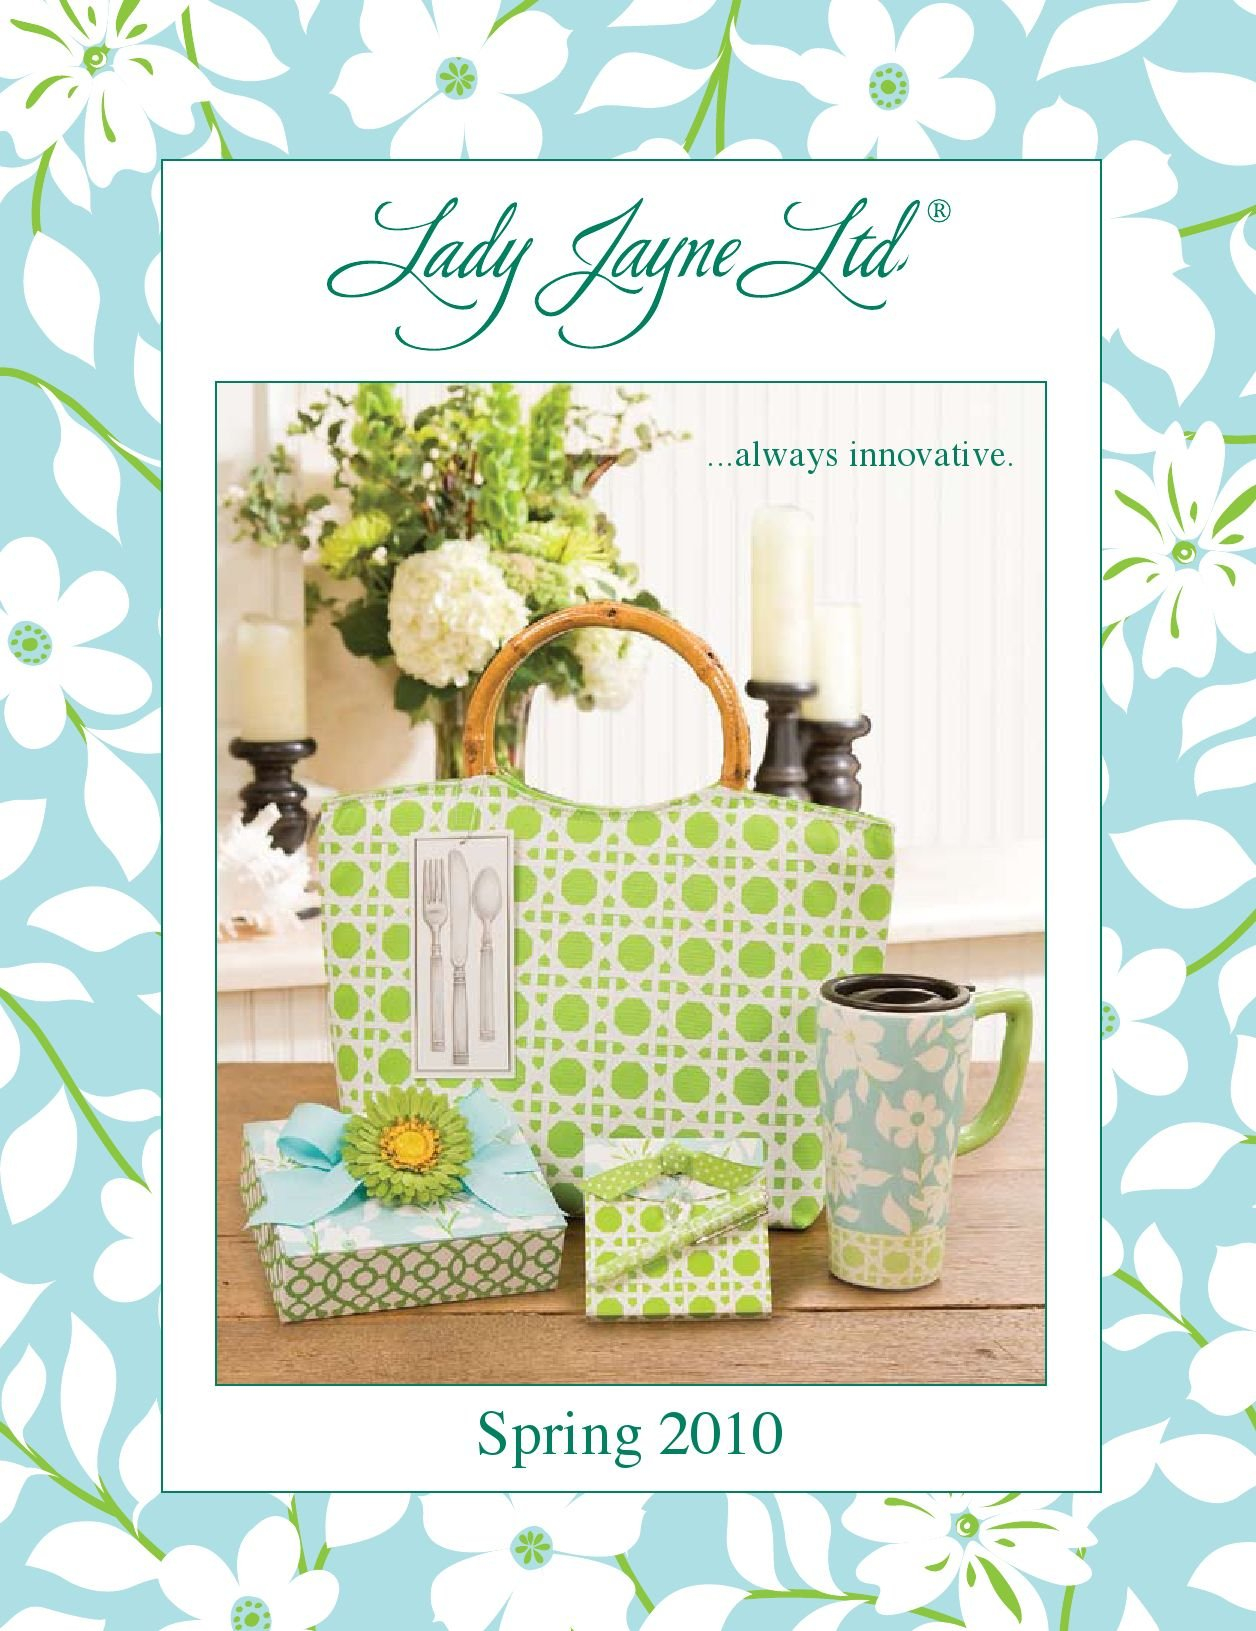 Lady Jane Spring2010Fairfull - Issuu 81/2 X 11 Calenar Pages